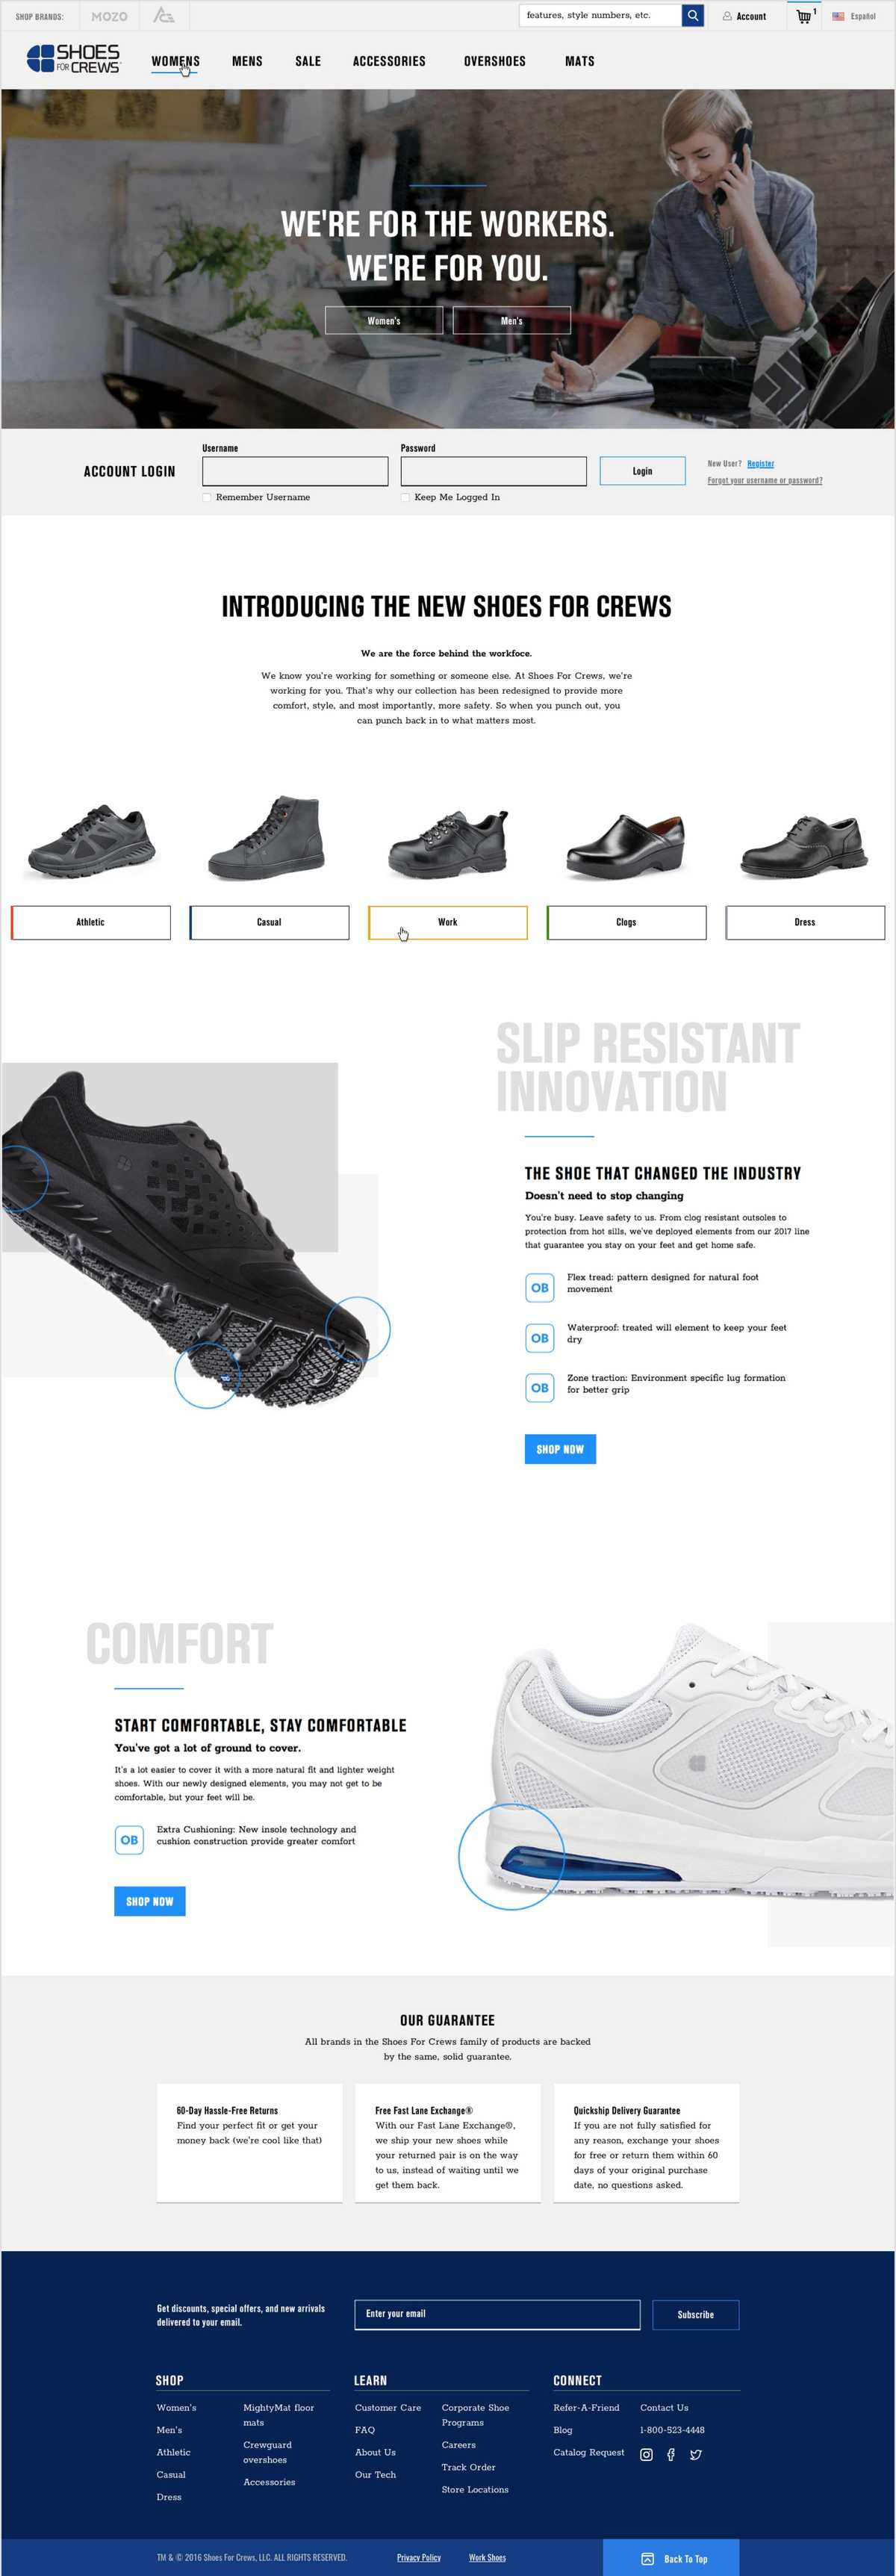 Screenshot of the full Shoes For Crews product page showing different sections including images of the shoe, pricing, features, and reviews.